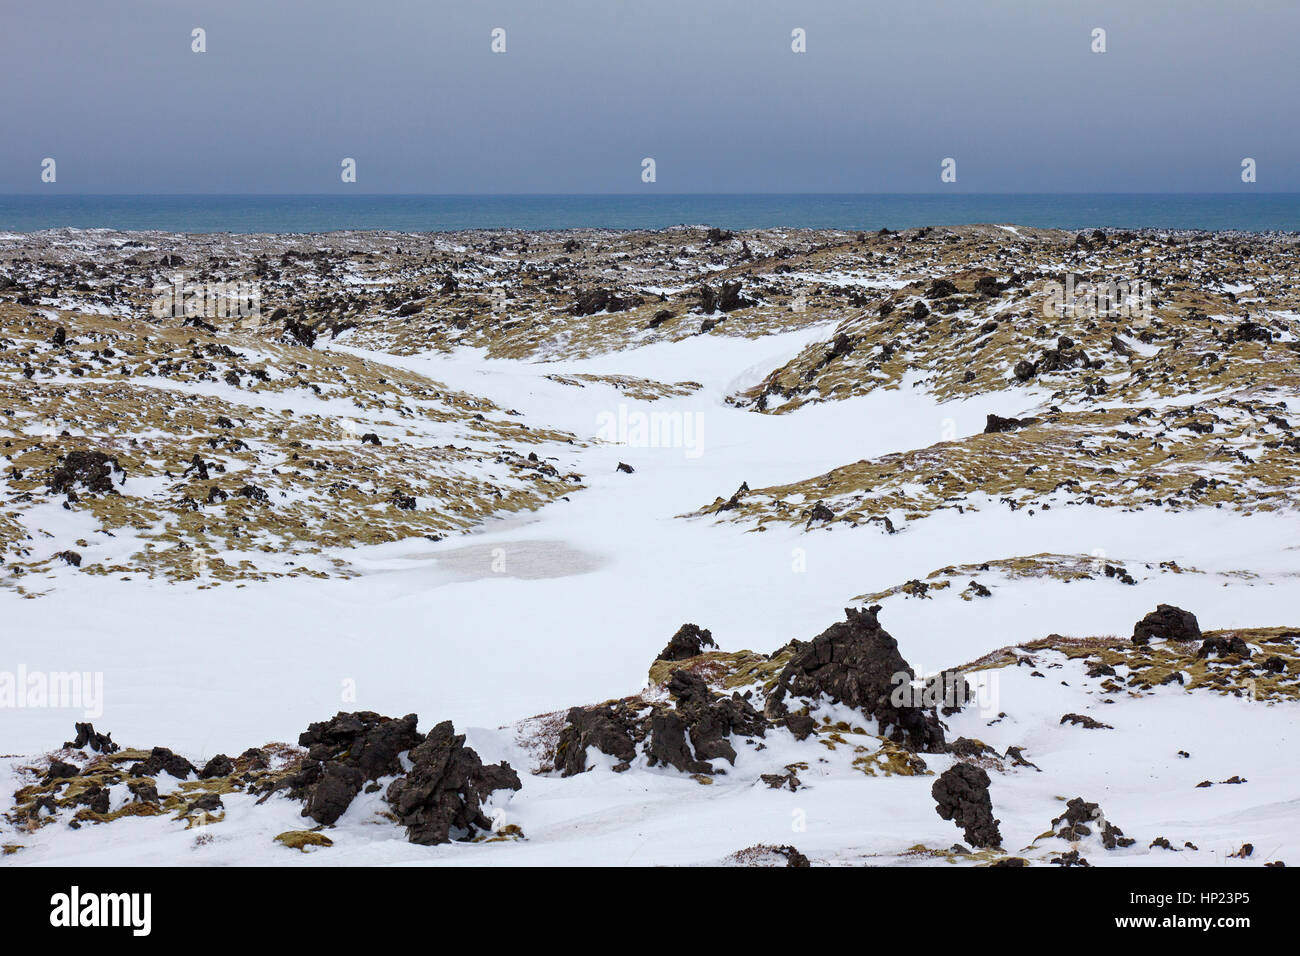 Lava field covered in snow at the Snaefellsjoekull National Park in winter on the Snæfellsnes peninsula in - Stock Image